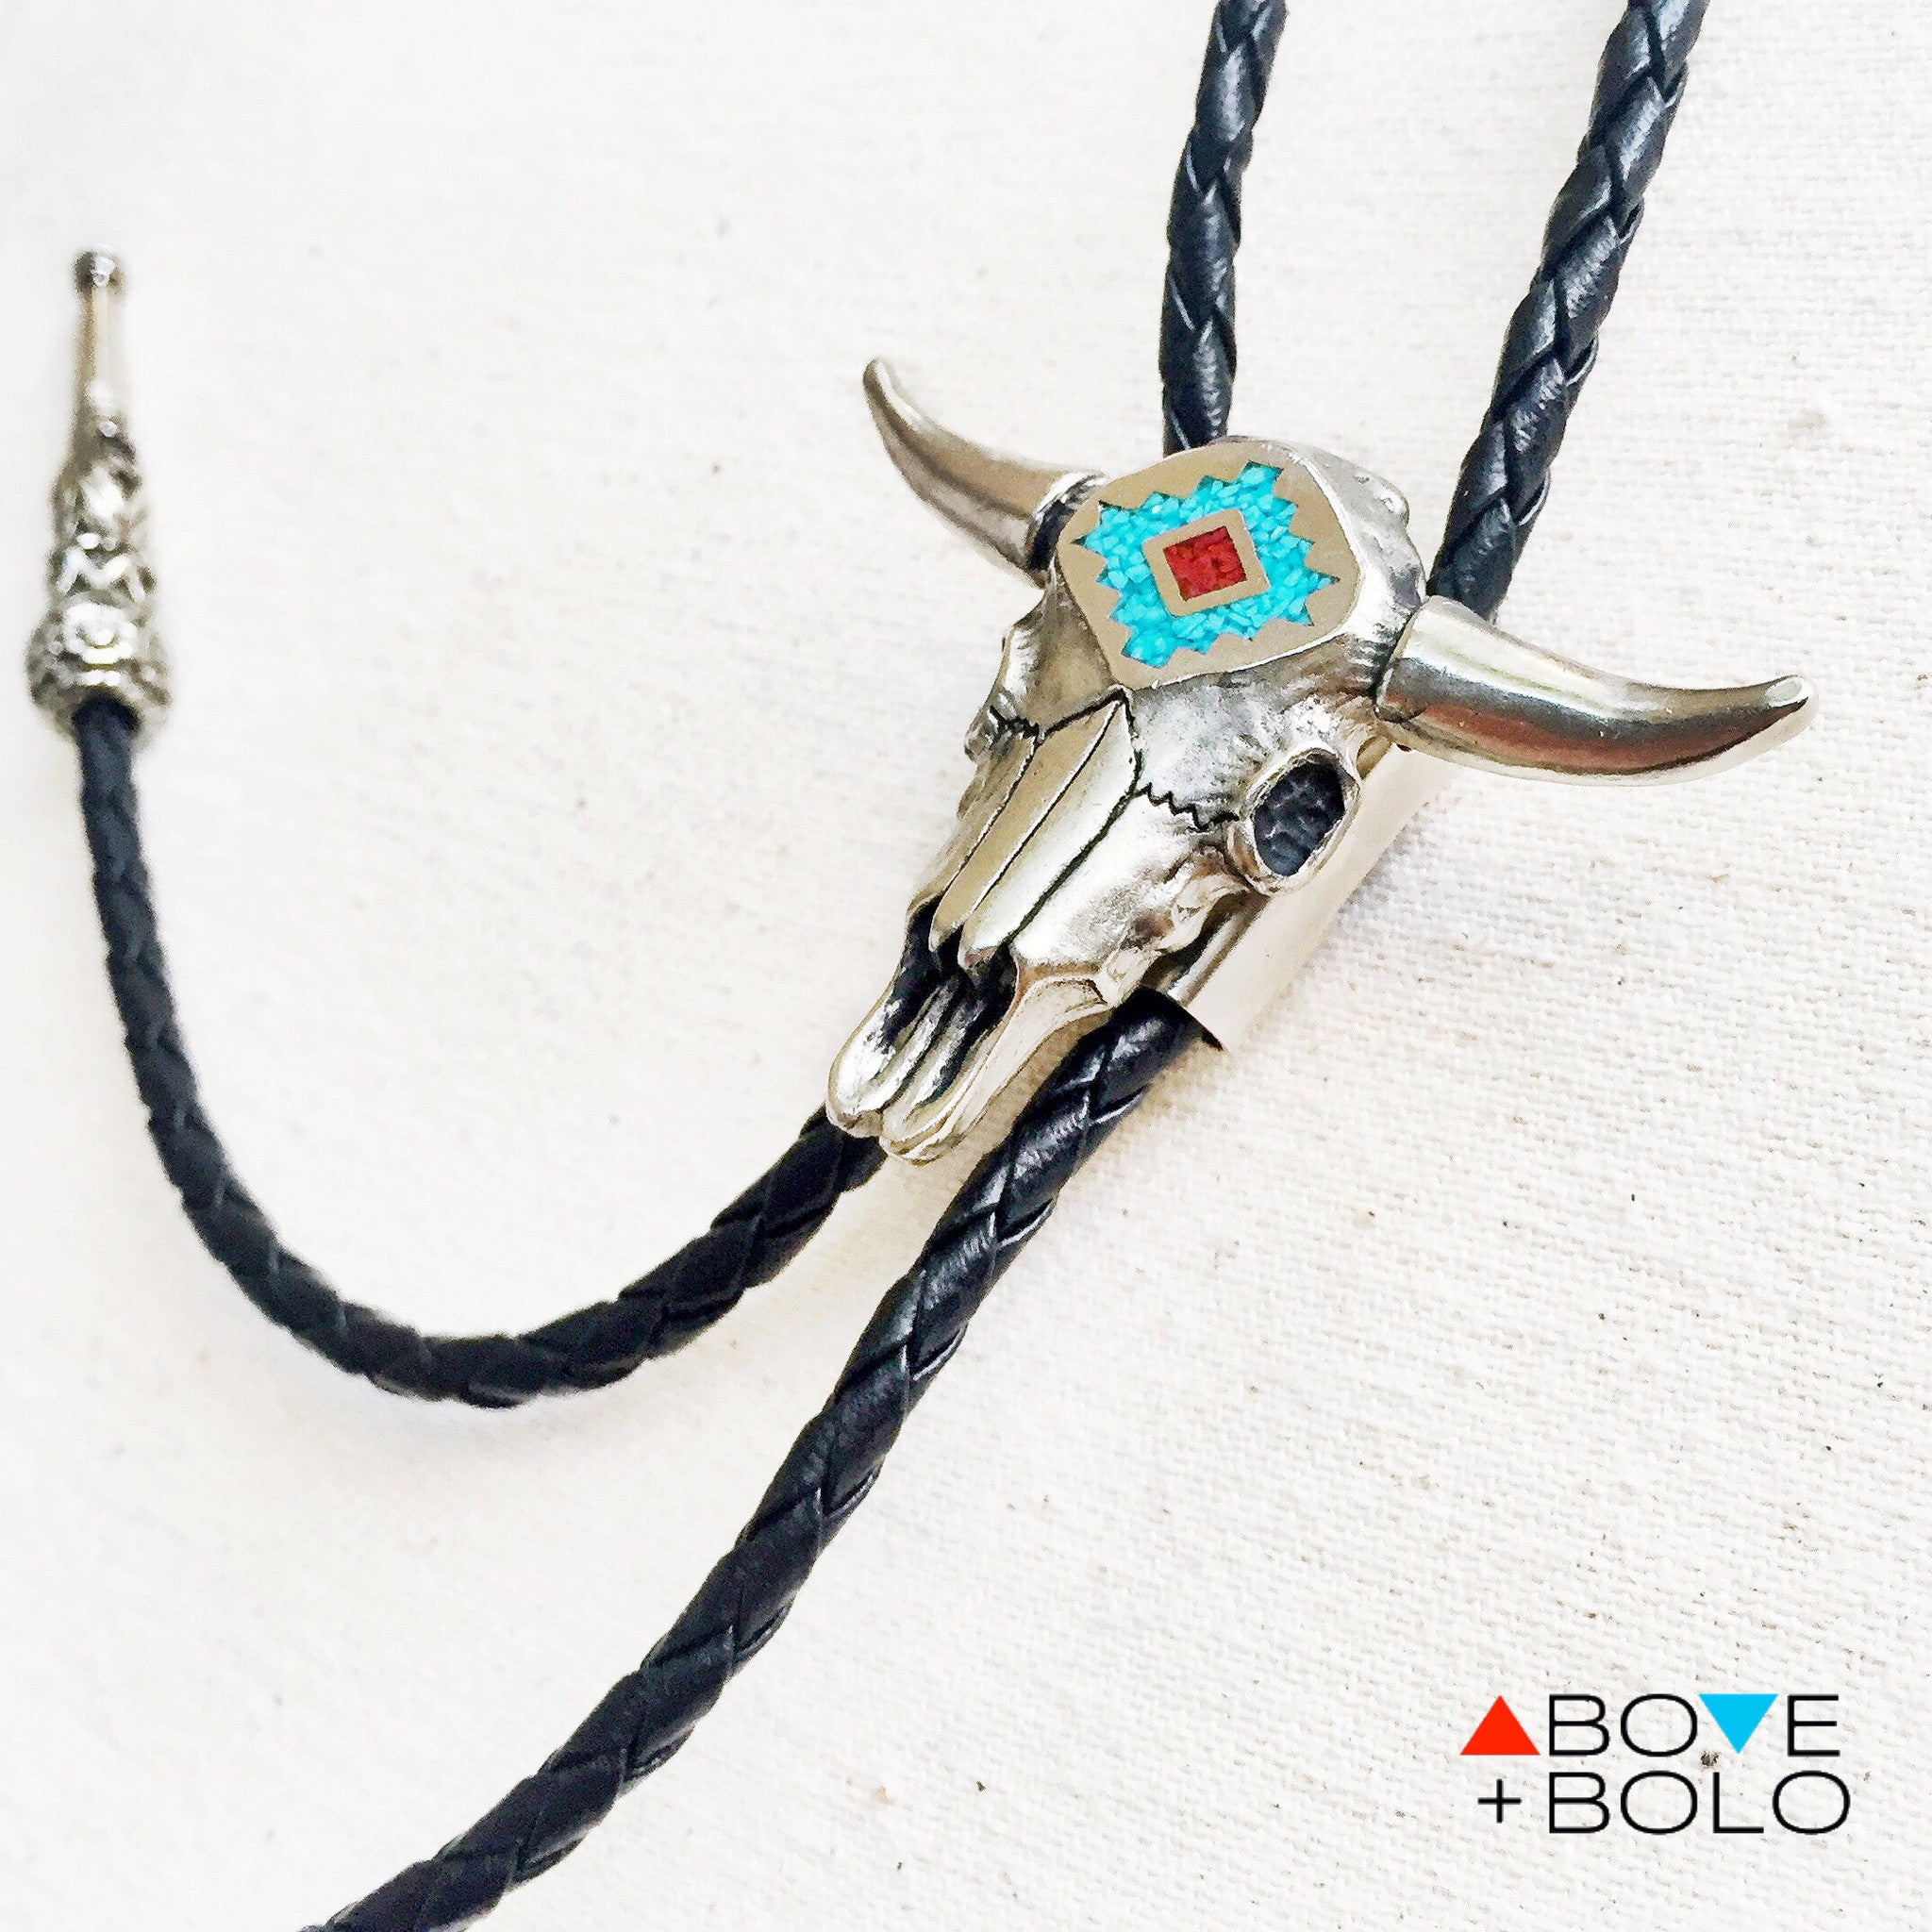 6b4e98eb56bb ... bullskull bolo tie with genuine turquoise and coral chip inlays with  ornate tips · steer skull ...